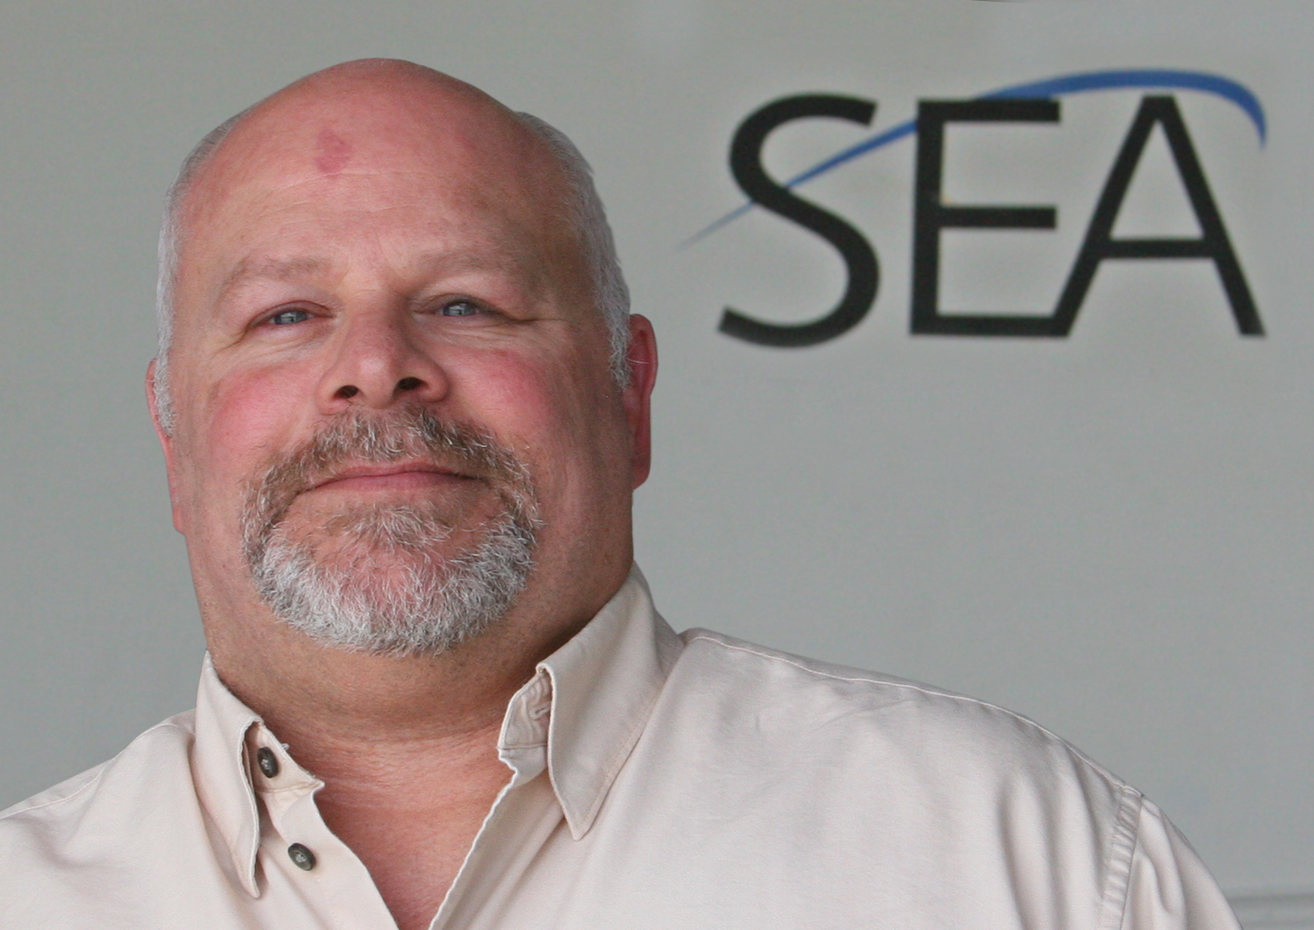 Southeast Aerospace Welcomes Ron Symonette, Senior Program Manager